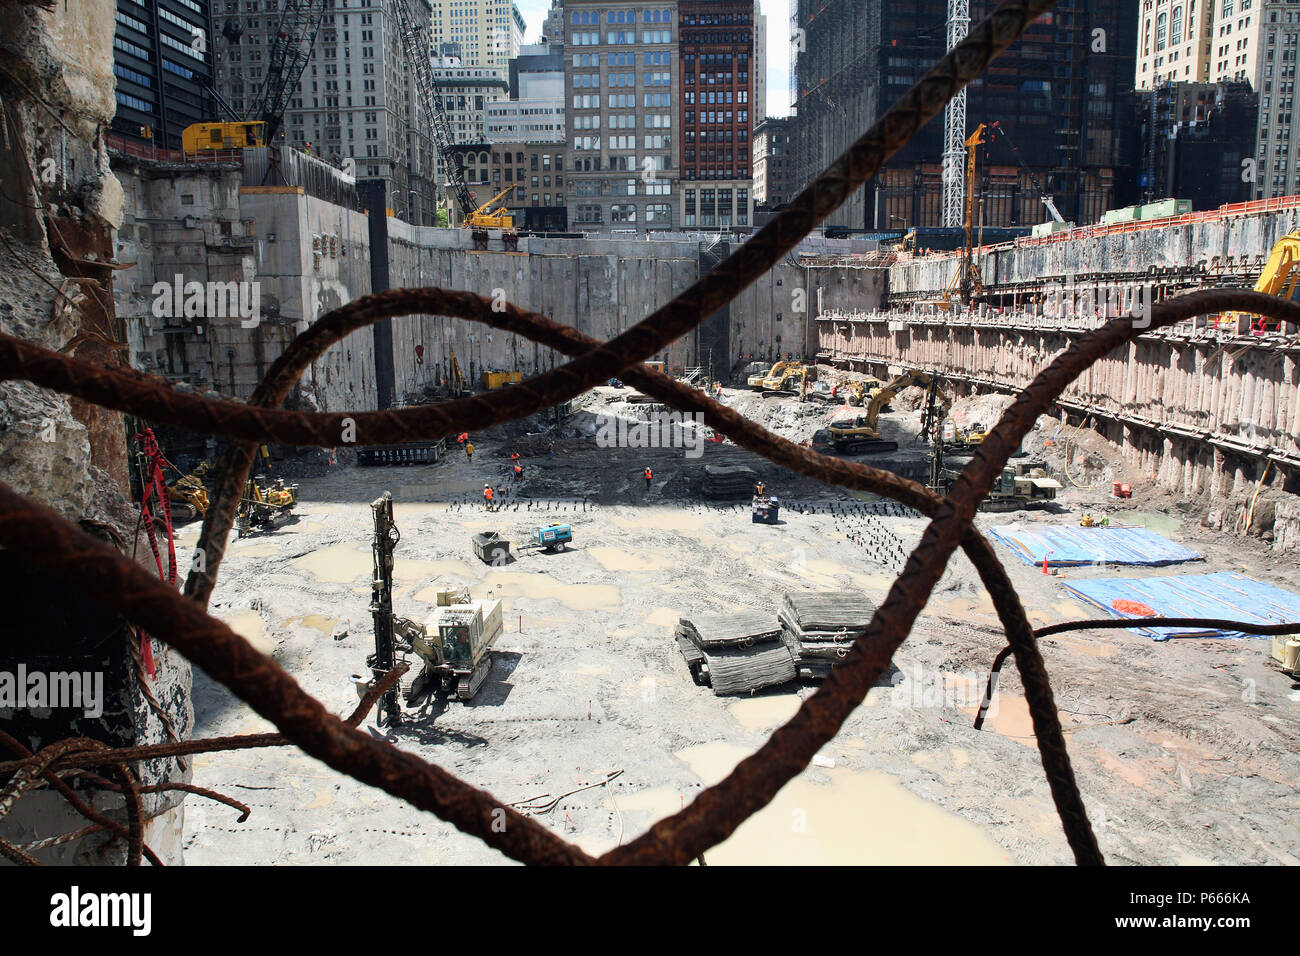 Tower Three and Tower 4 site as seen through twisted rebar at World Trade Center site, Lower Manhattan, New York City, USA - Stock Image